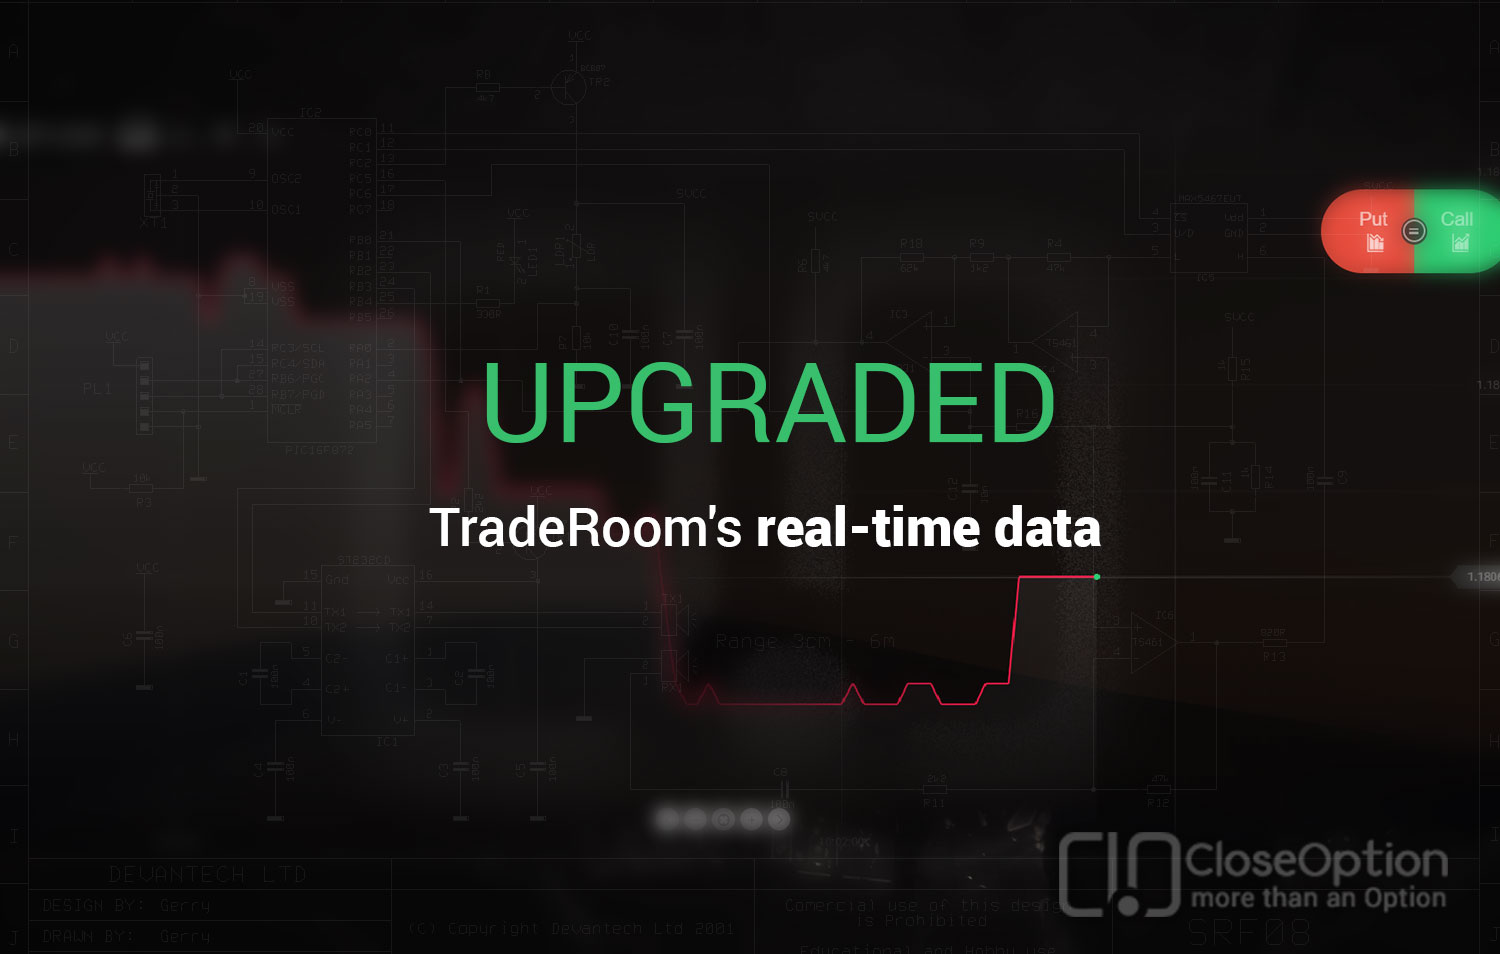 TradeRoom's real-time data upgraded